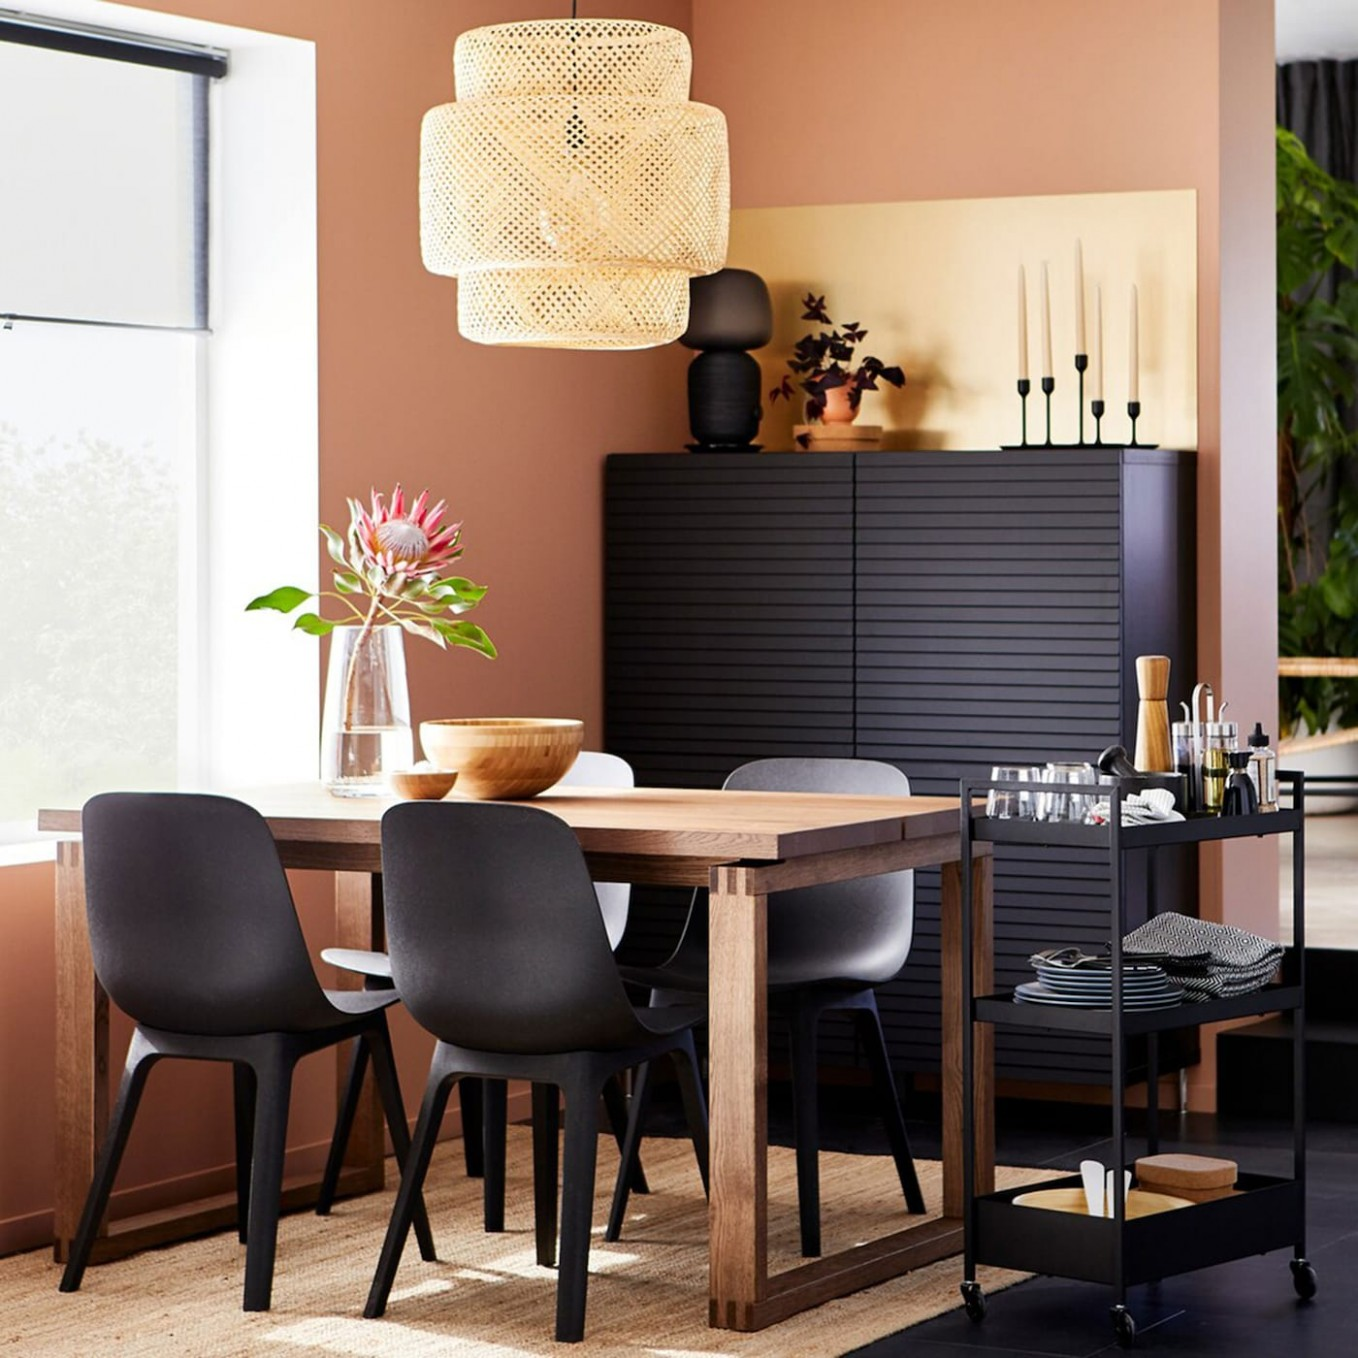 Dining room inspiration - IKEA - Dining Room Ideas Ikea